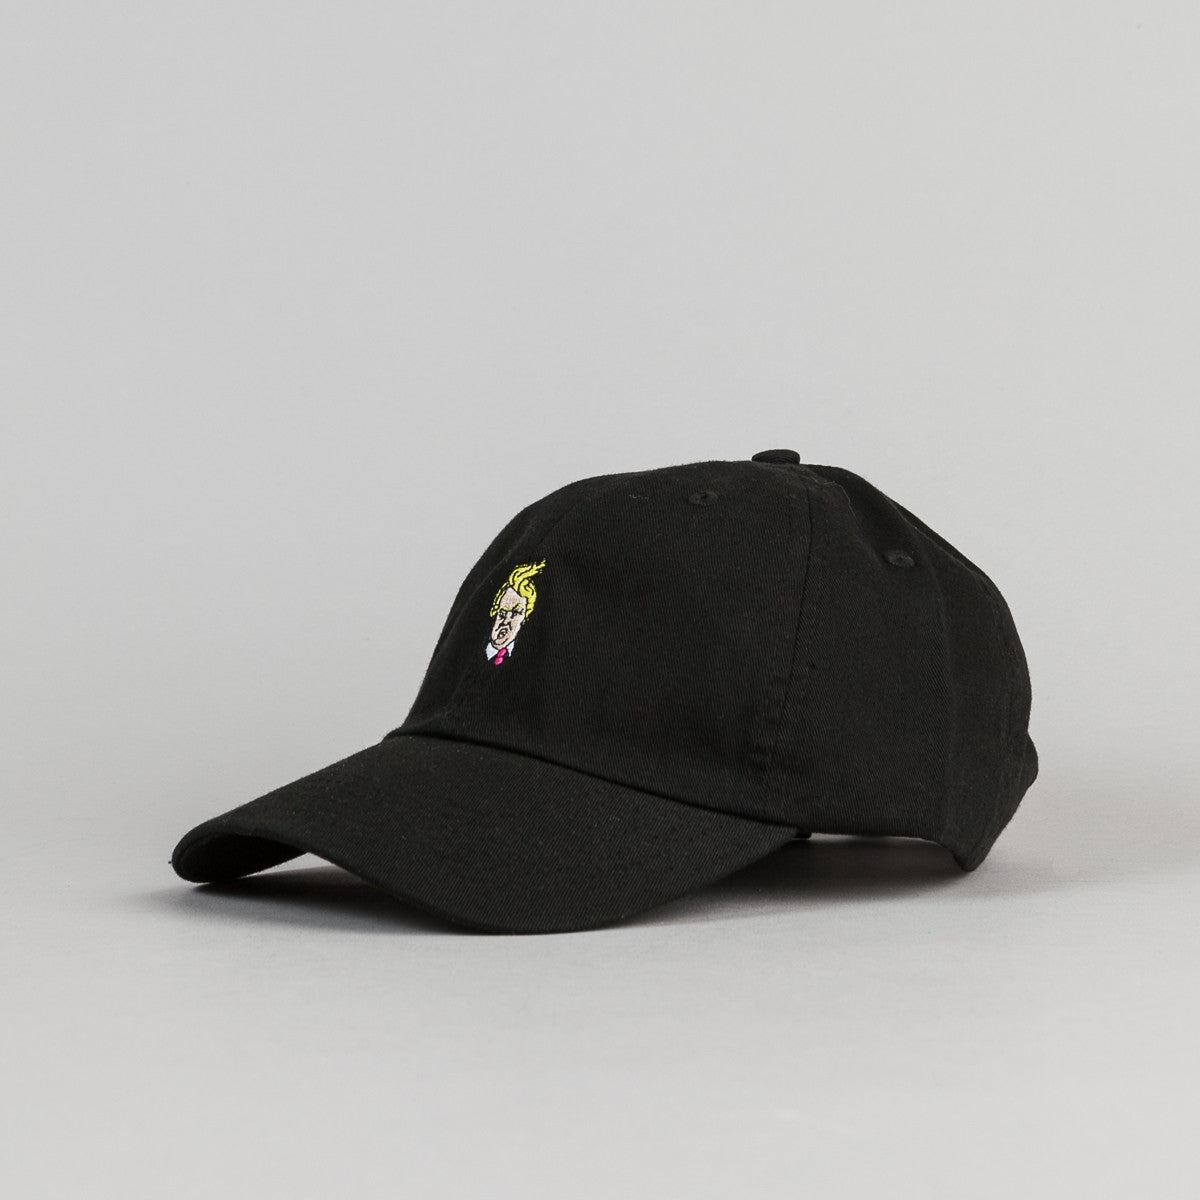 40s & Shorties Comb Over Cap - Black